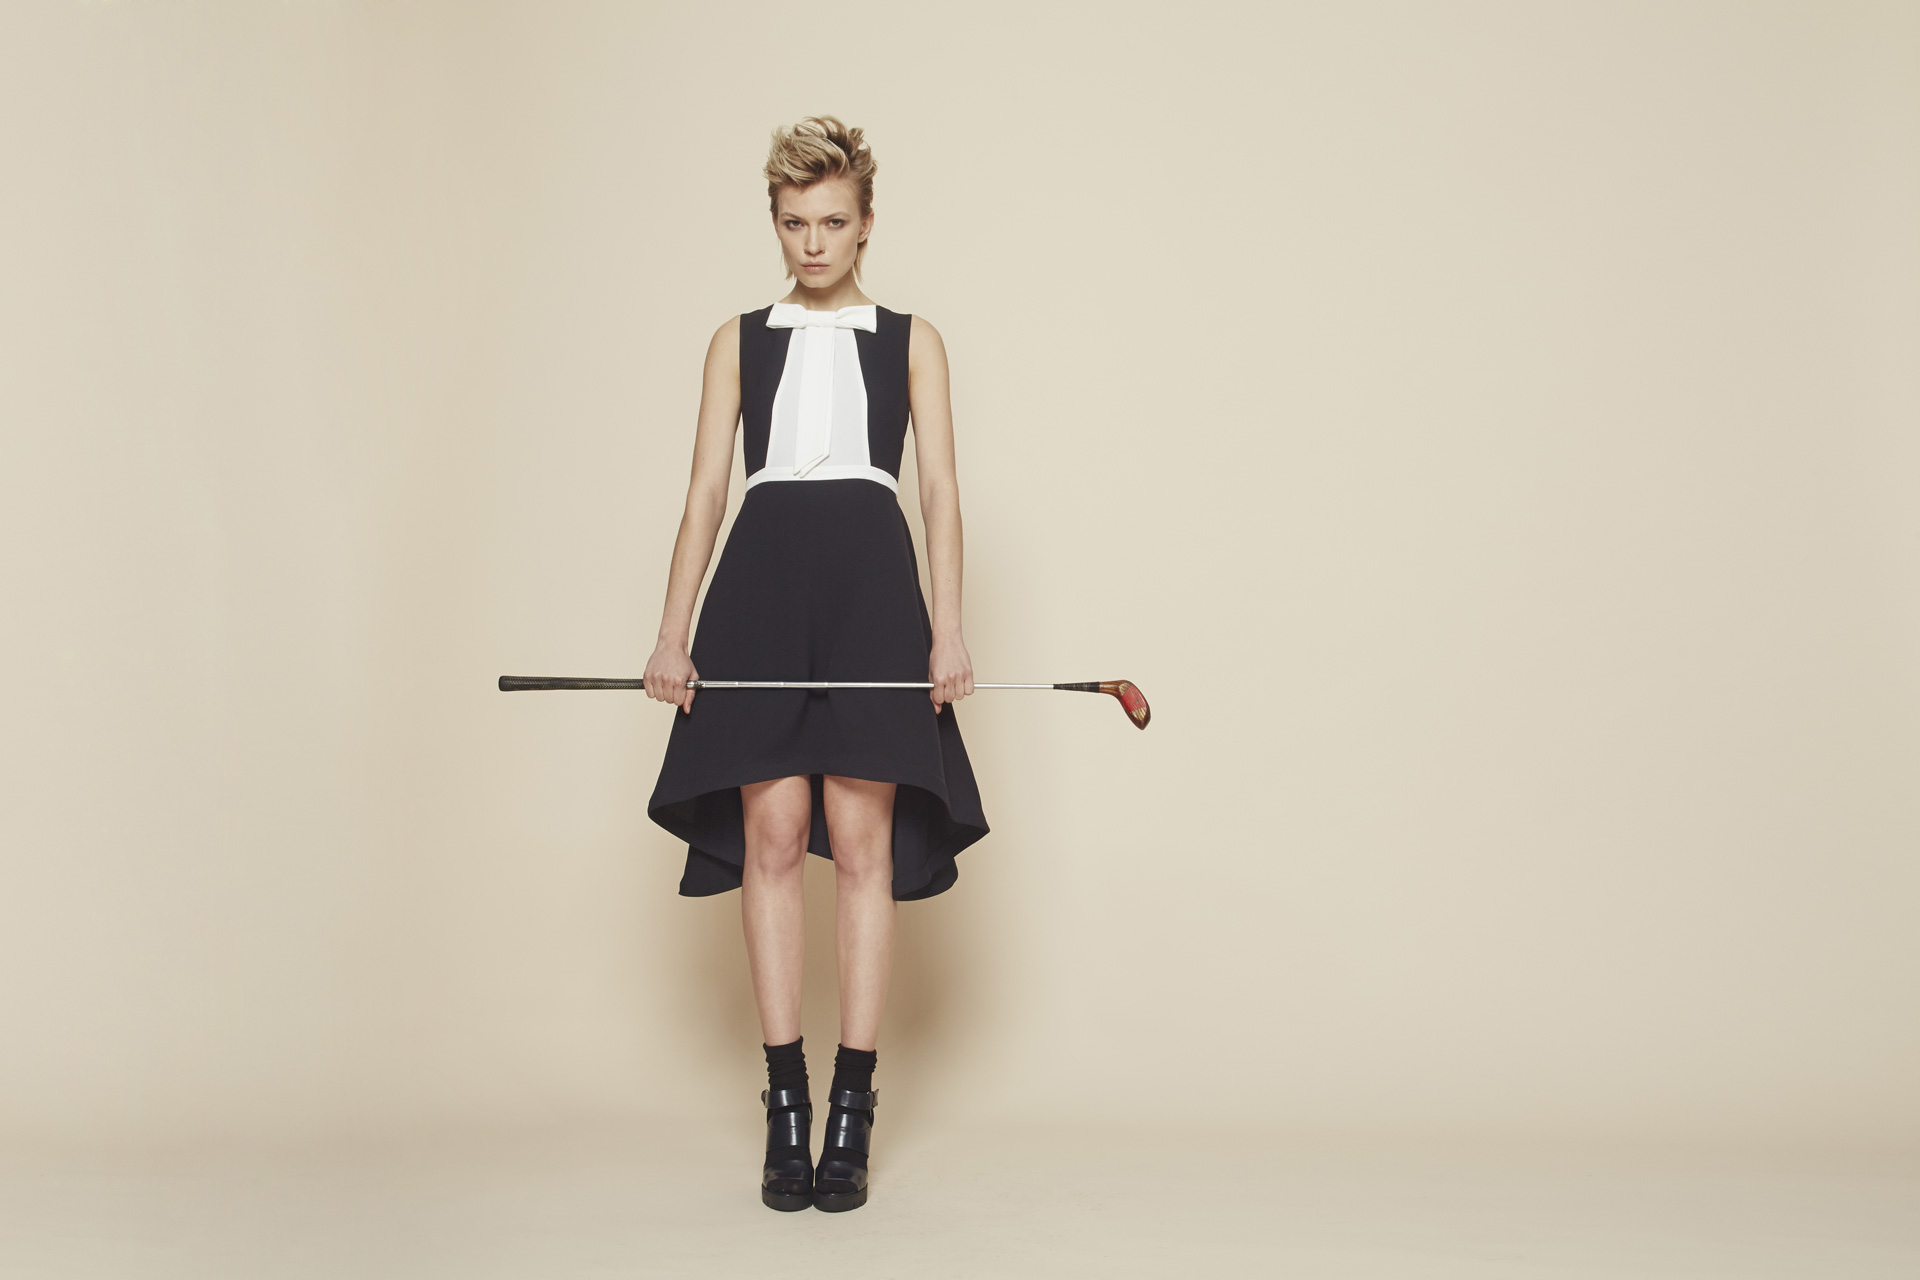 Autumn Winter 2015/16 Collection: Article Glauco dress 3